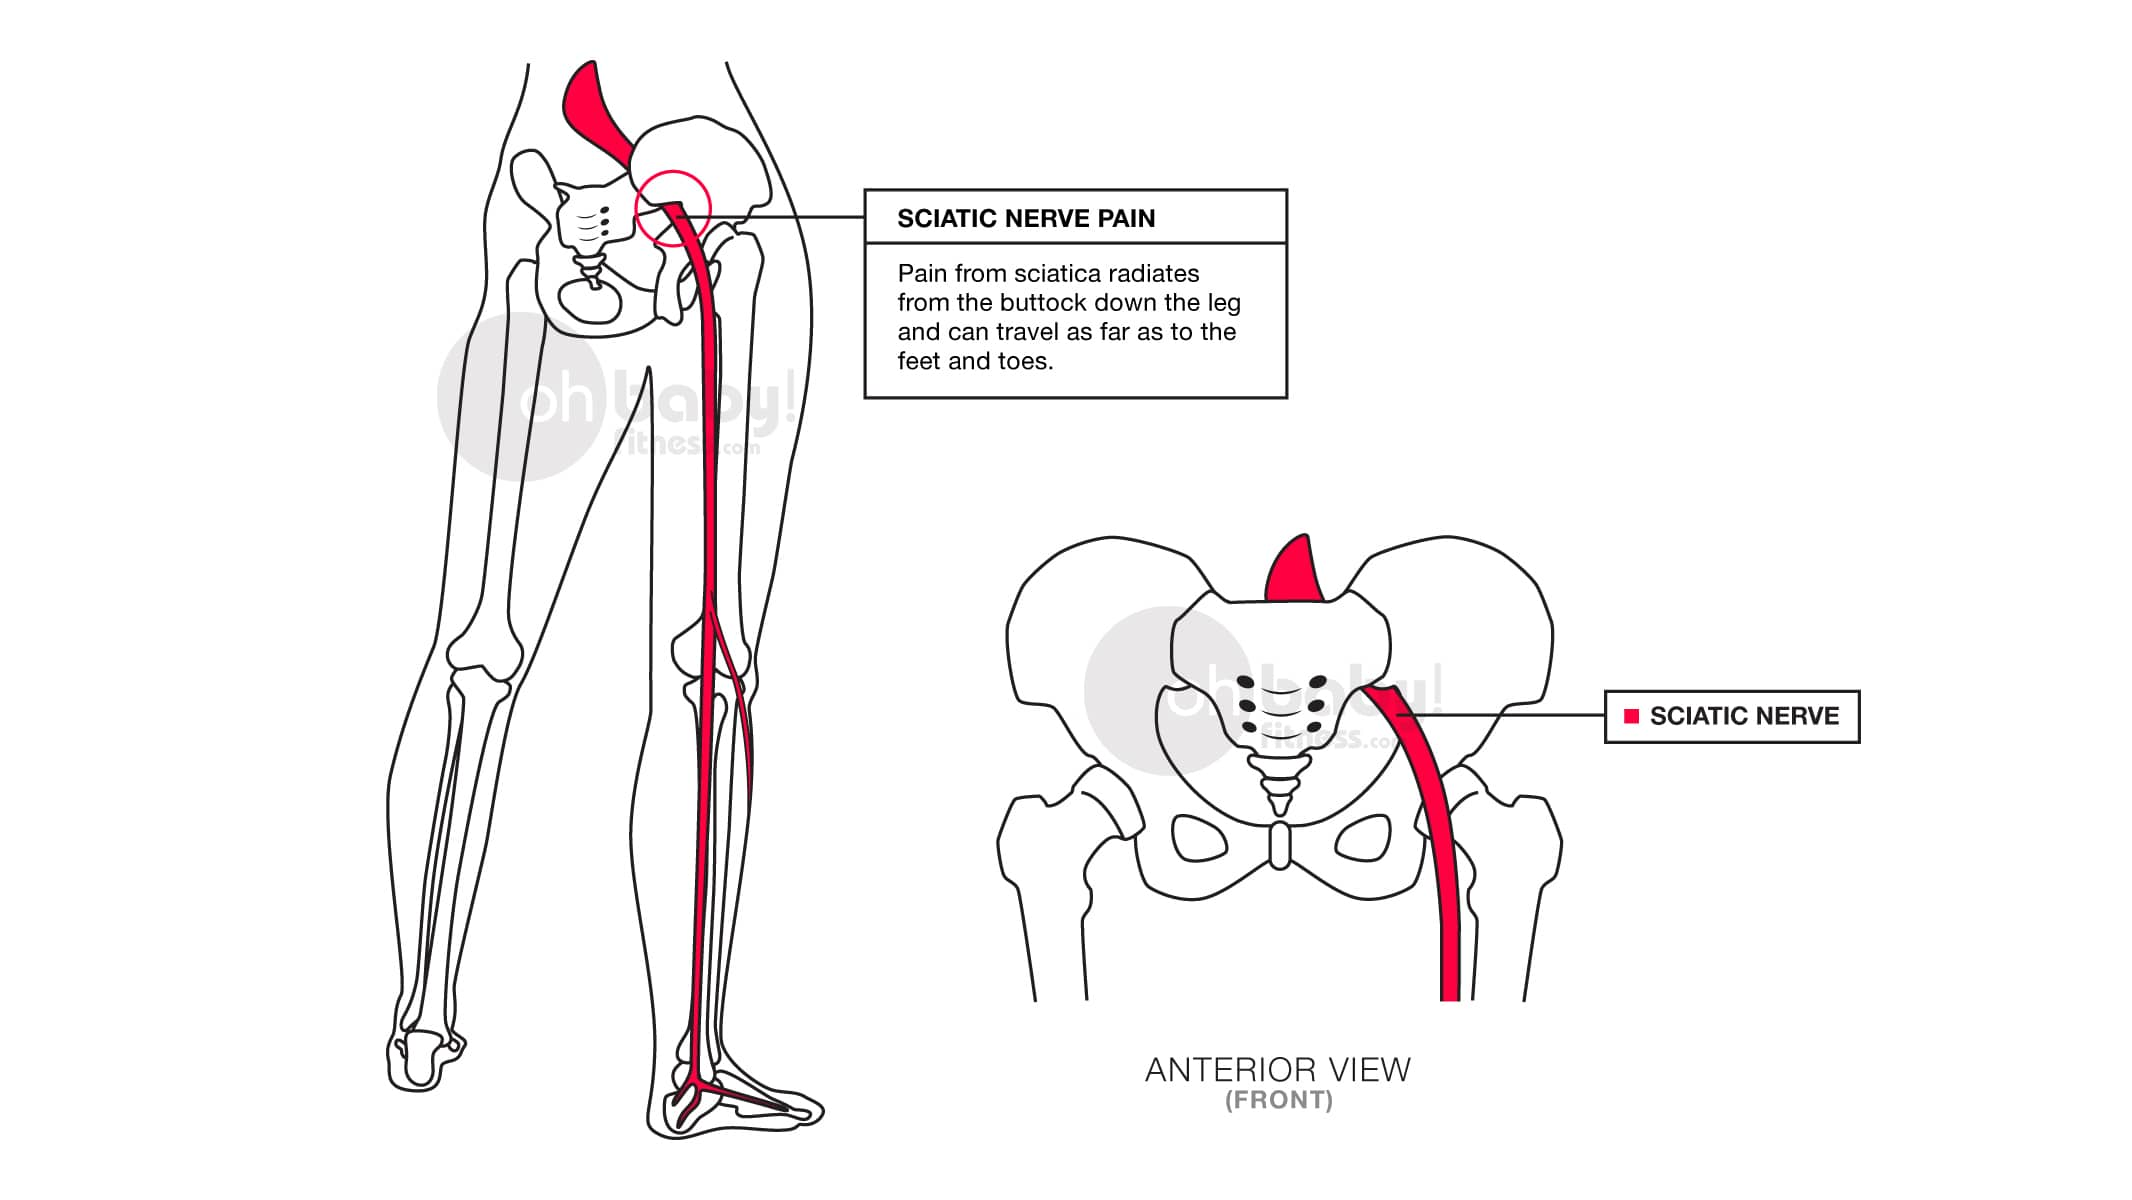 What Is The Sciatic Nerve